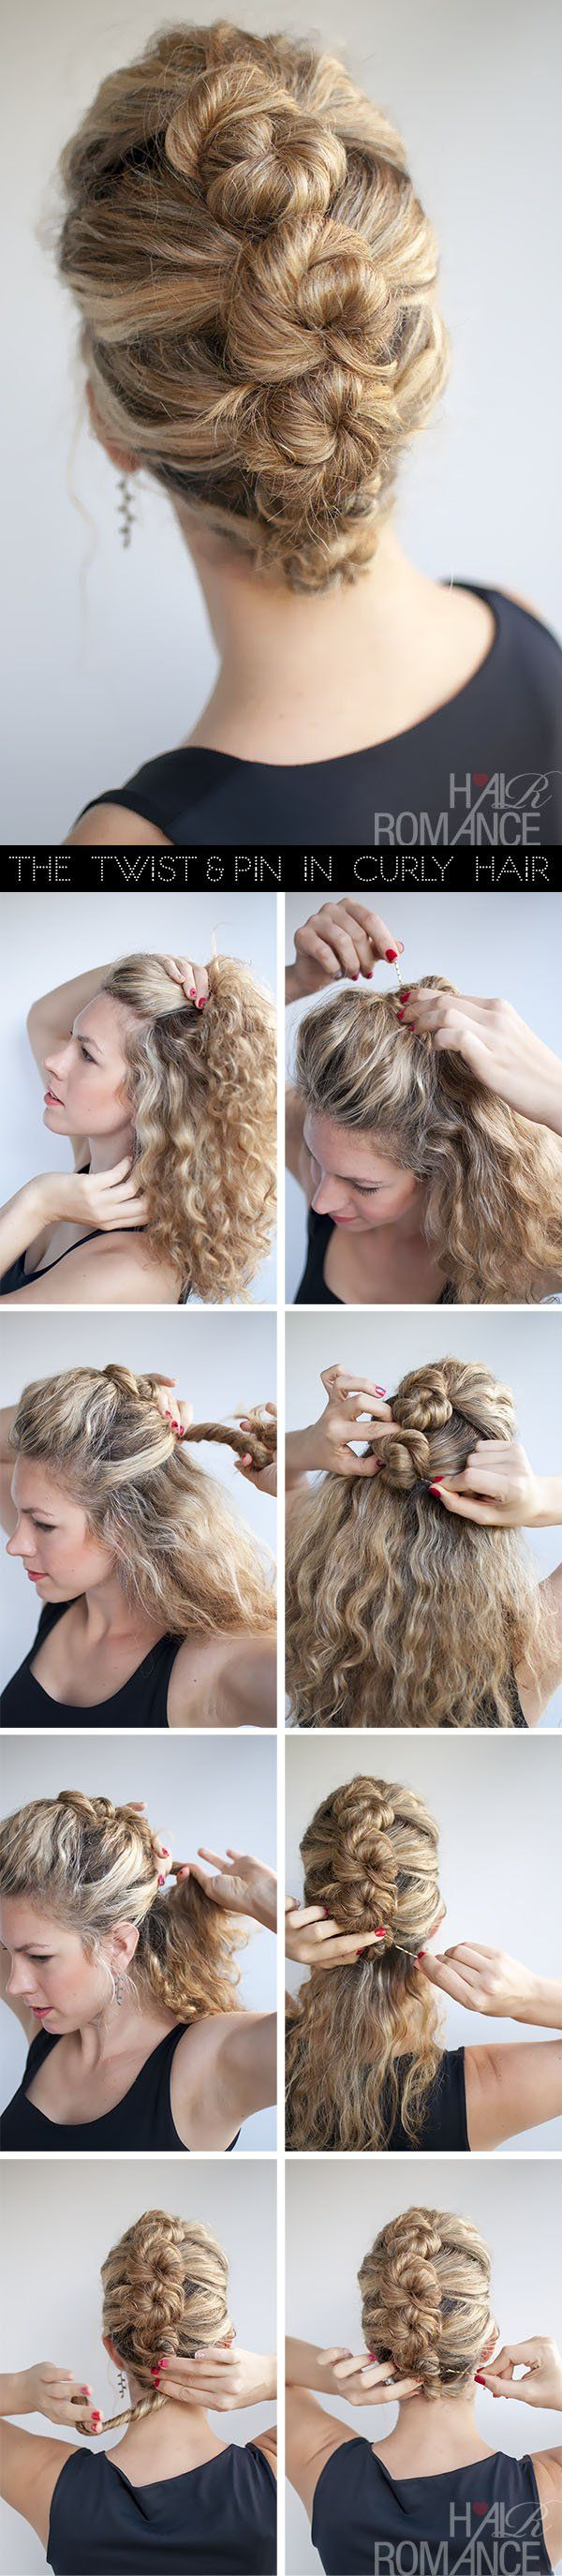 Pinned Updo Hairstyle for Curly Hair